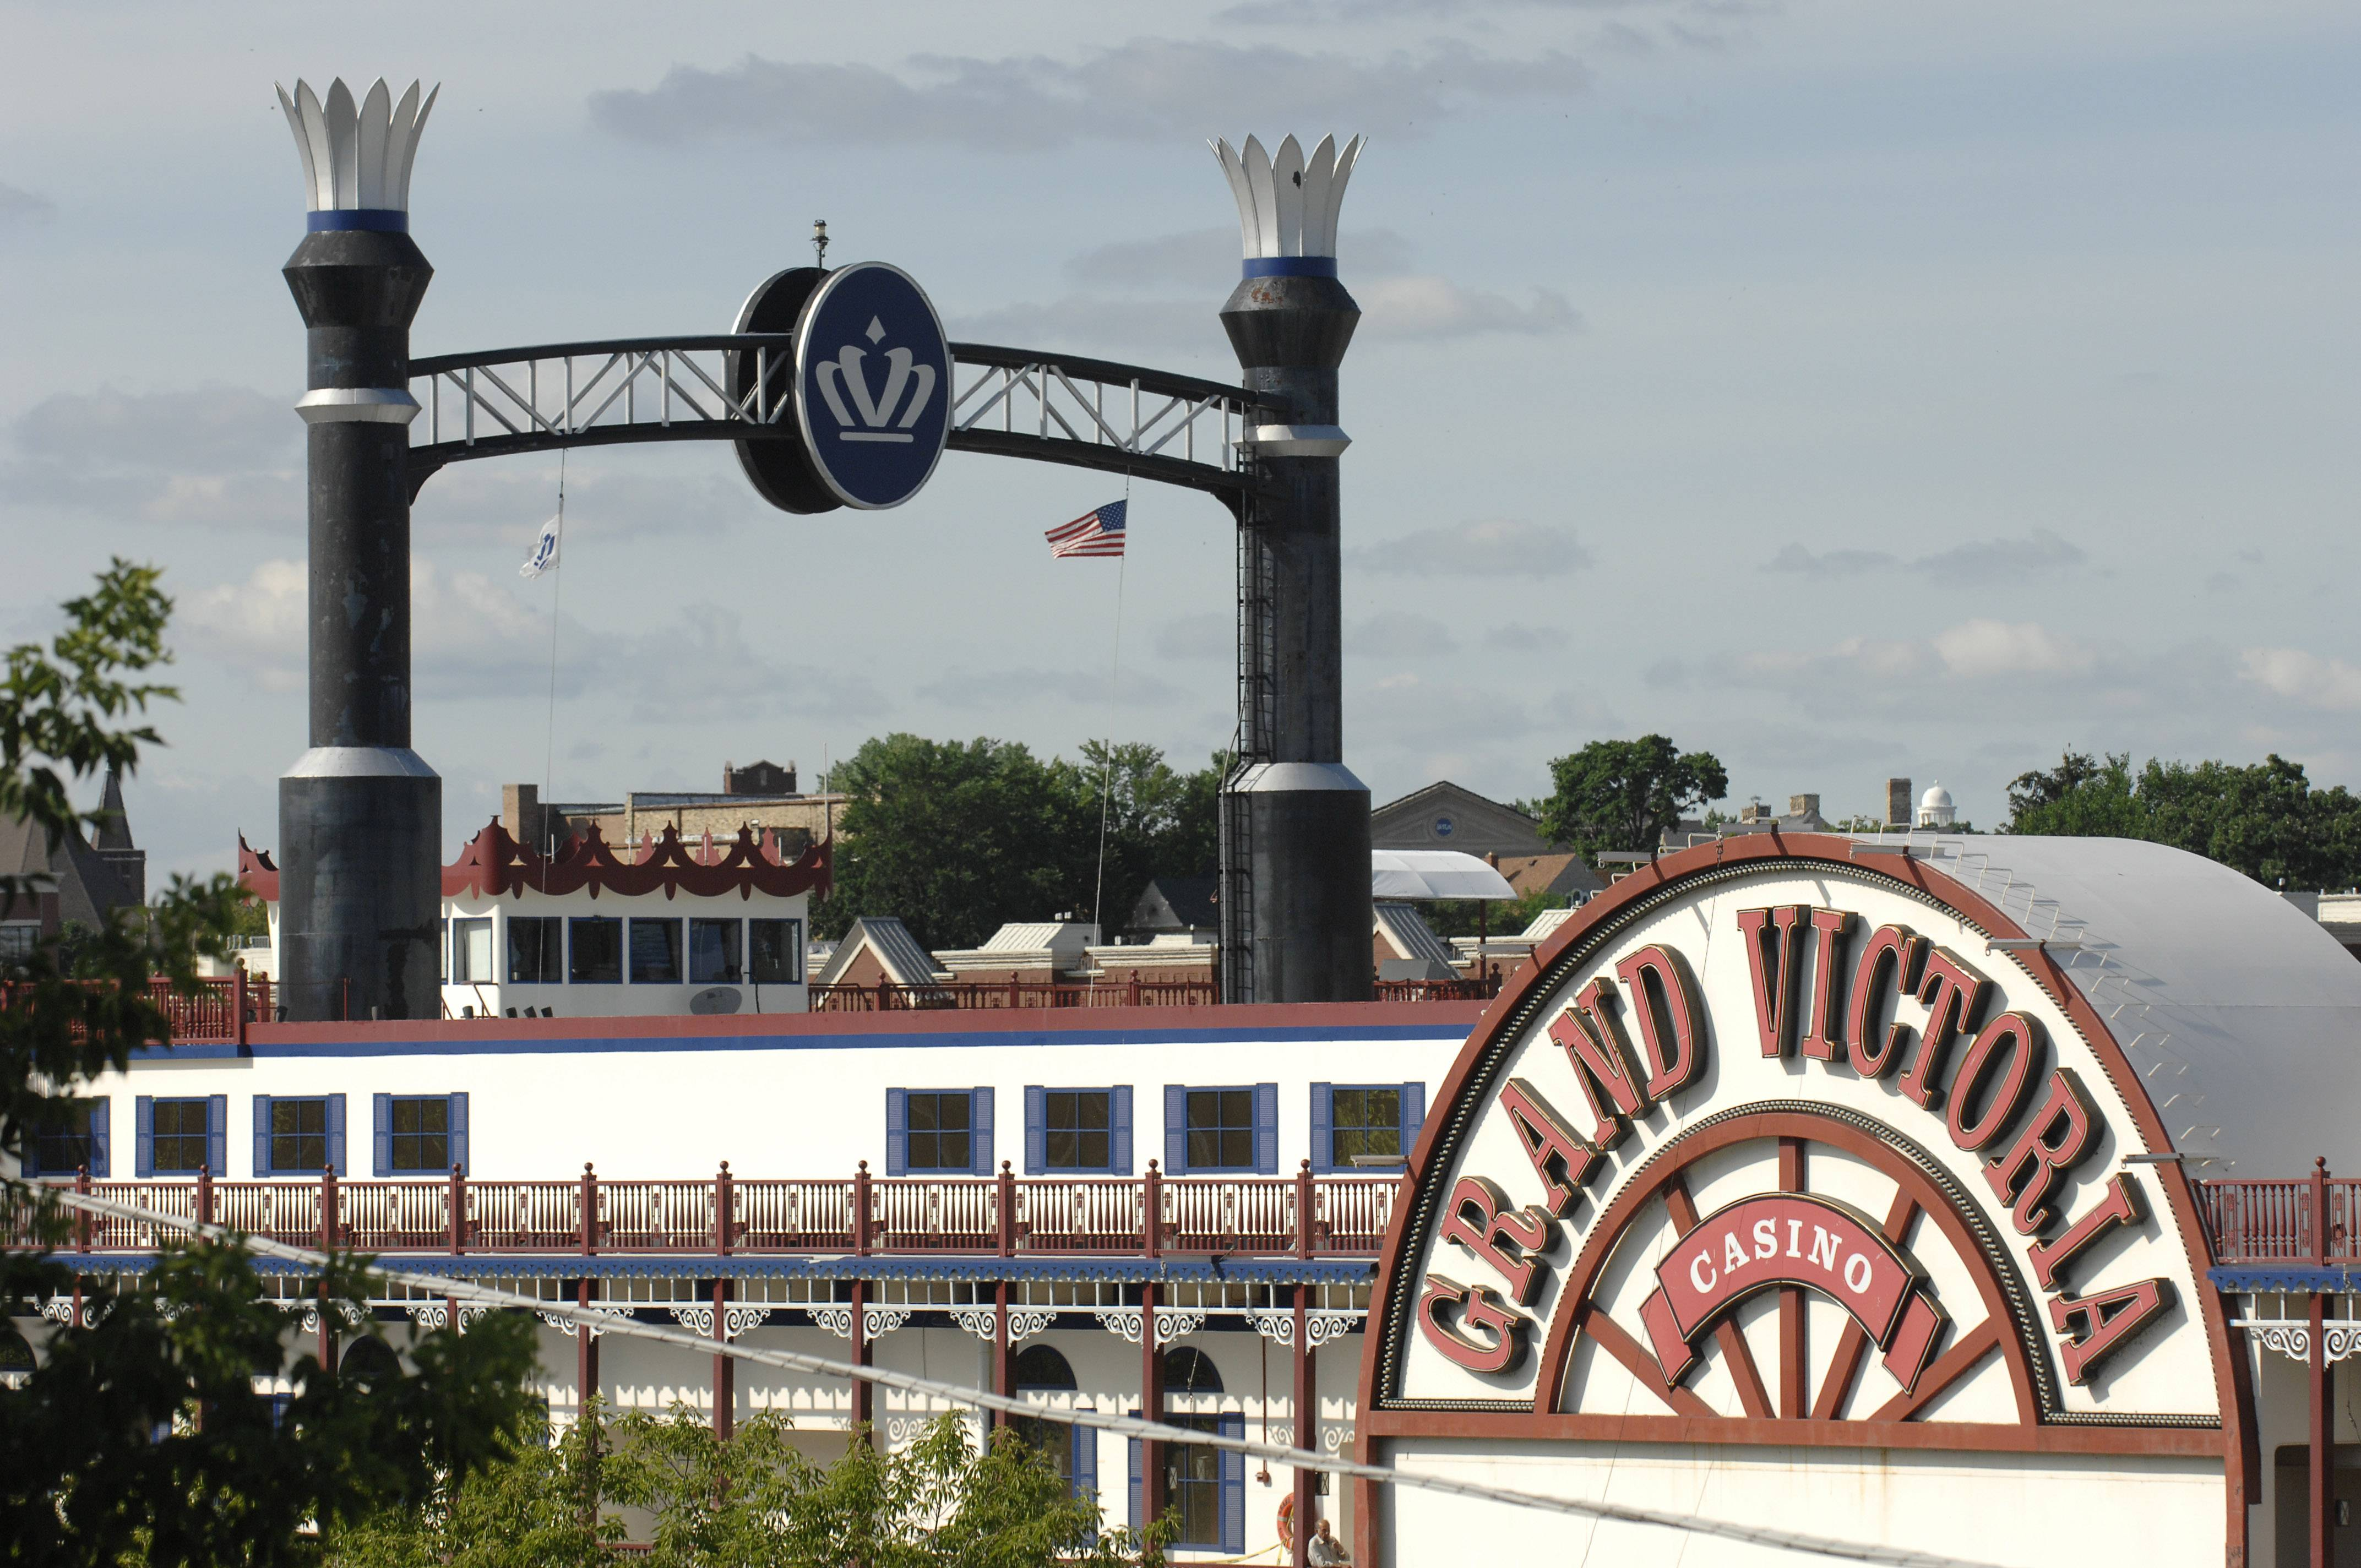 The profit margin for the Grand Victoria Casino in Elgin continues to shrink amid increased competition.